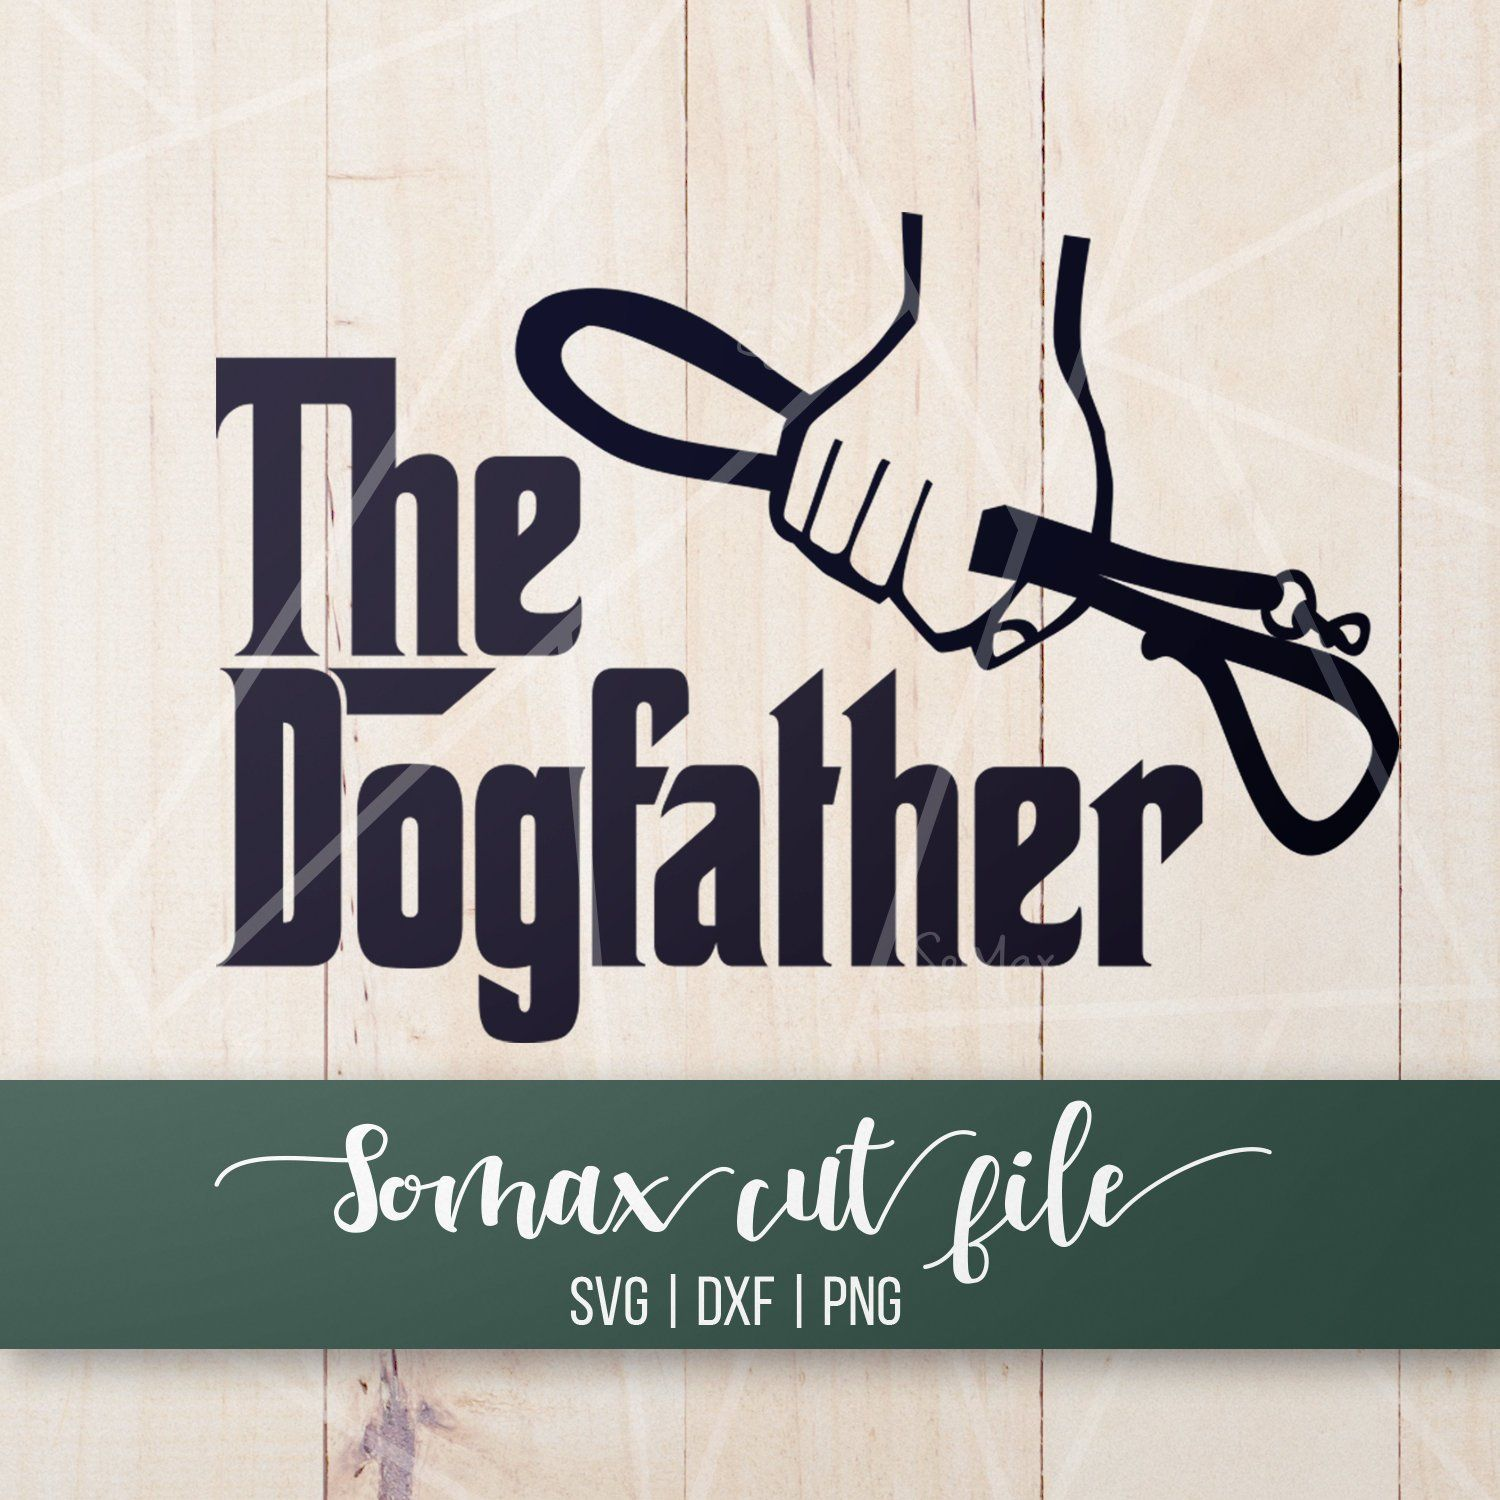 The Dog Father SVG Dog Dad Svg DXF Dog Father PNG Dog